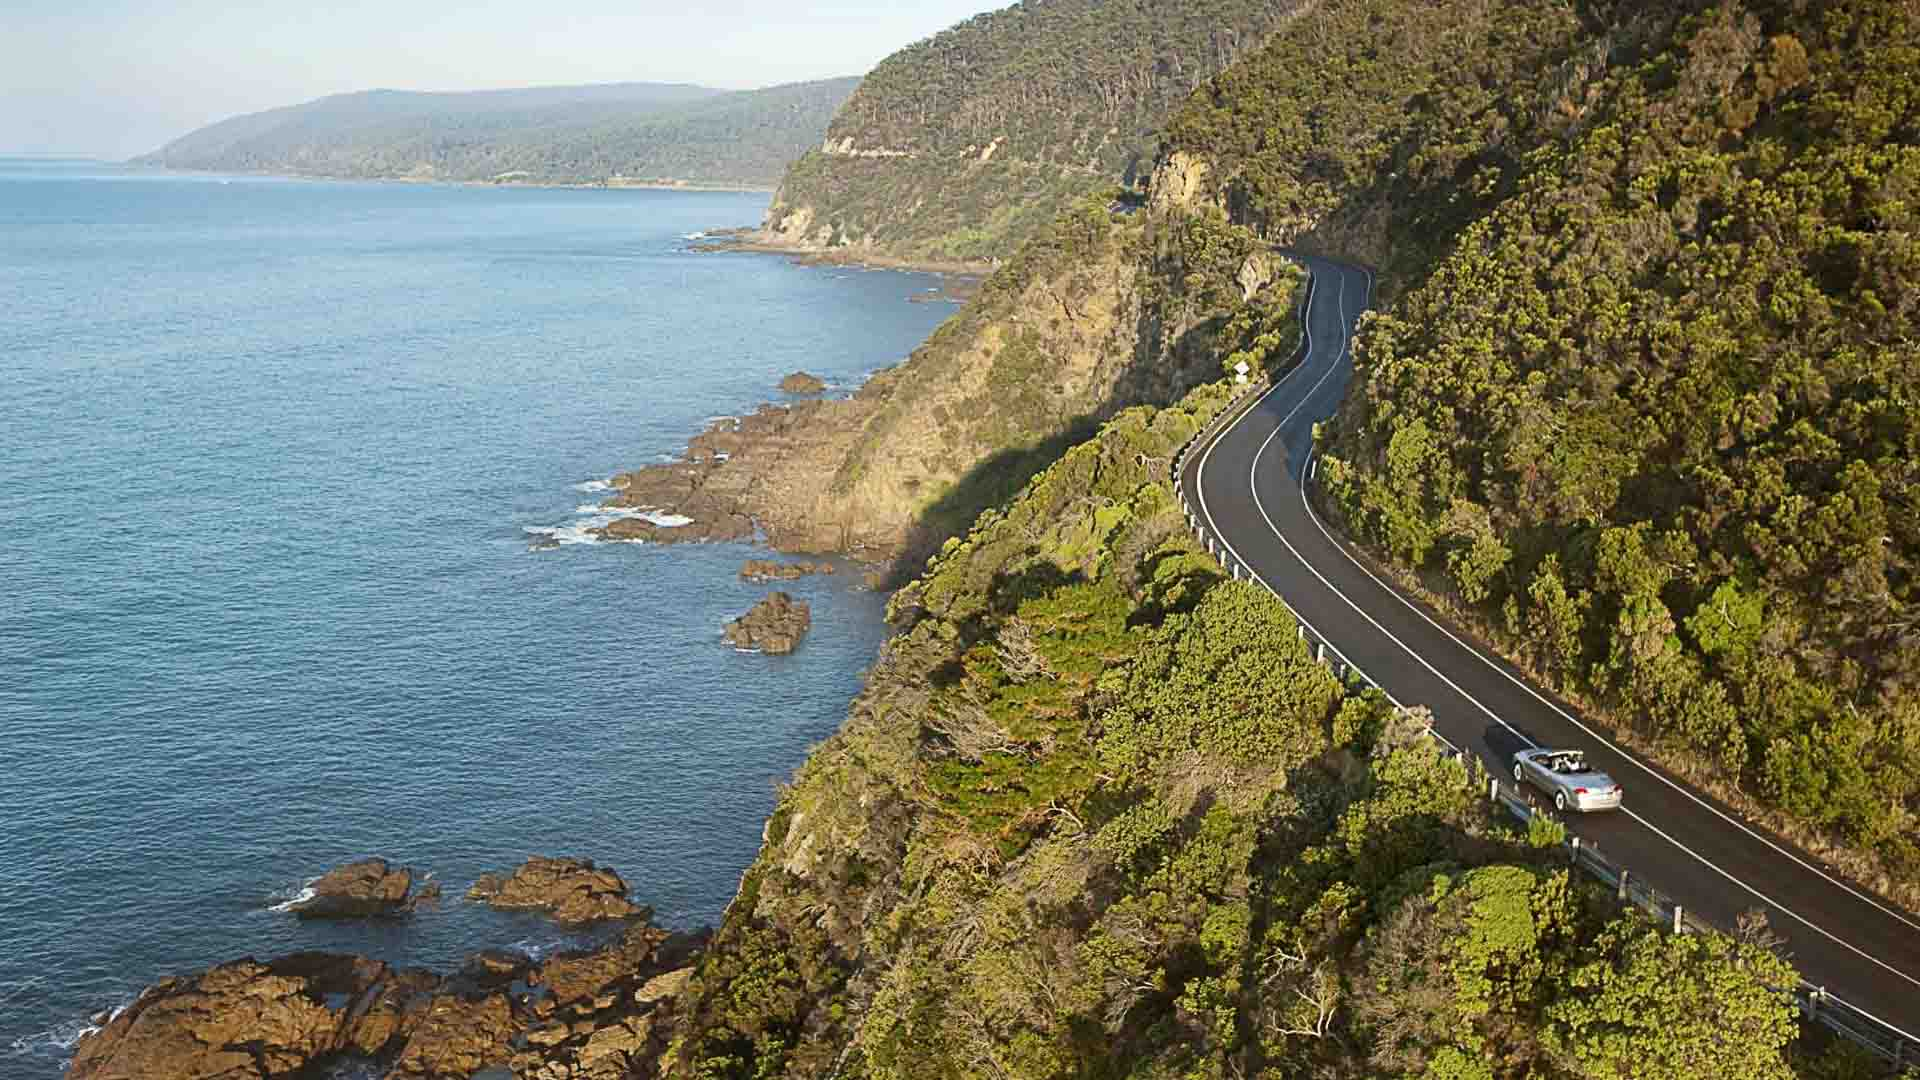 The Great Road in Australia. Photo credits: www.australia.com